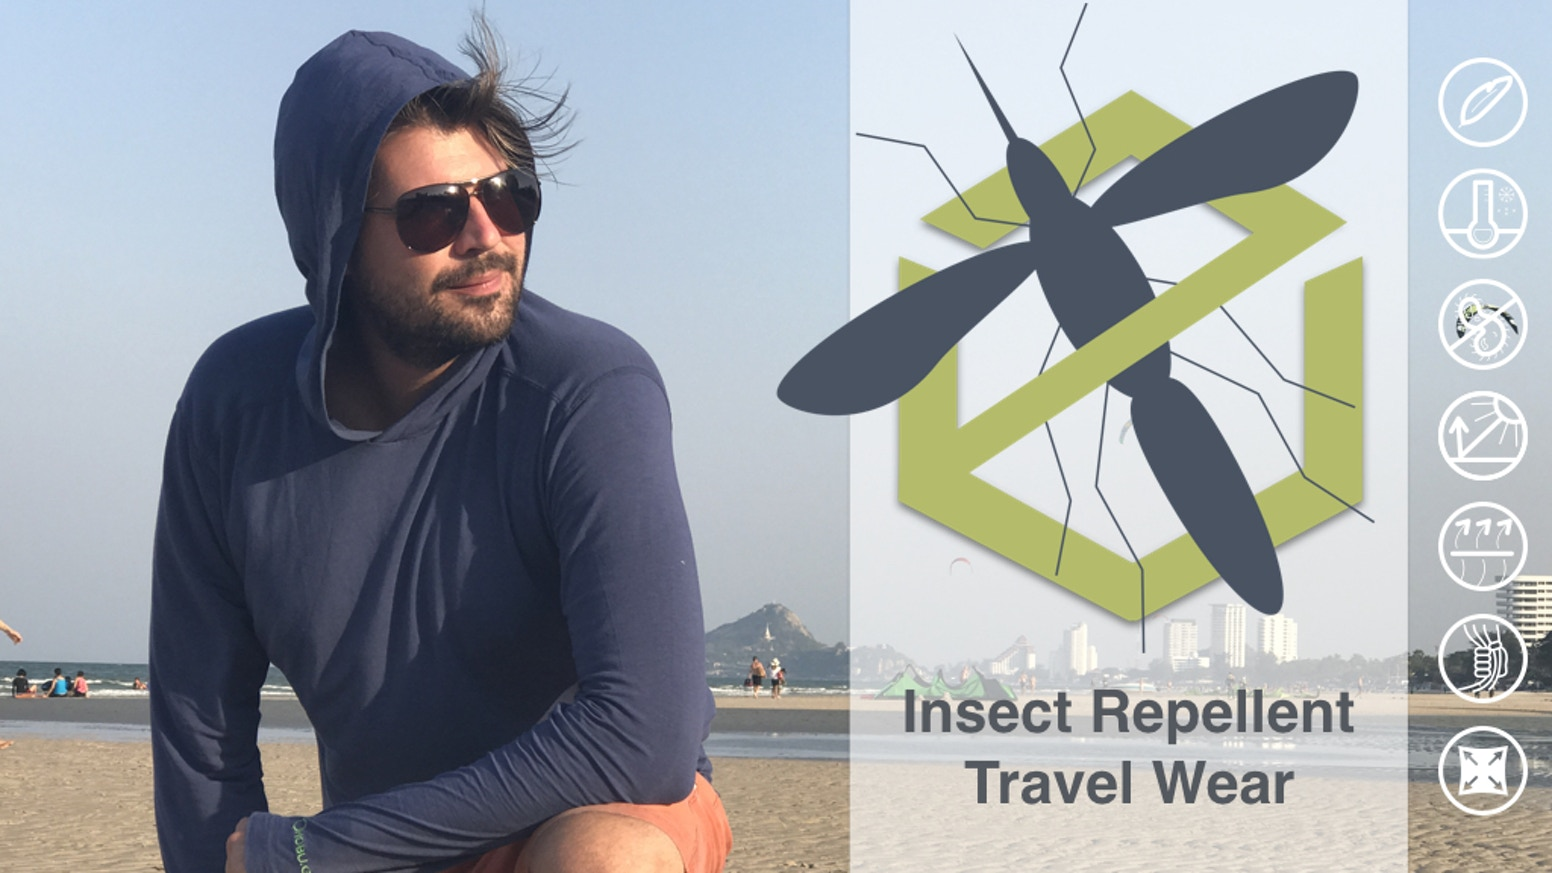 The ultimate insect repellent travel hoodie, cargo pants and socks. 